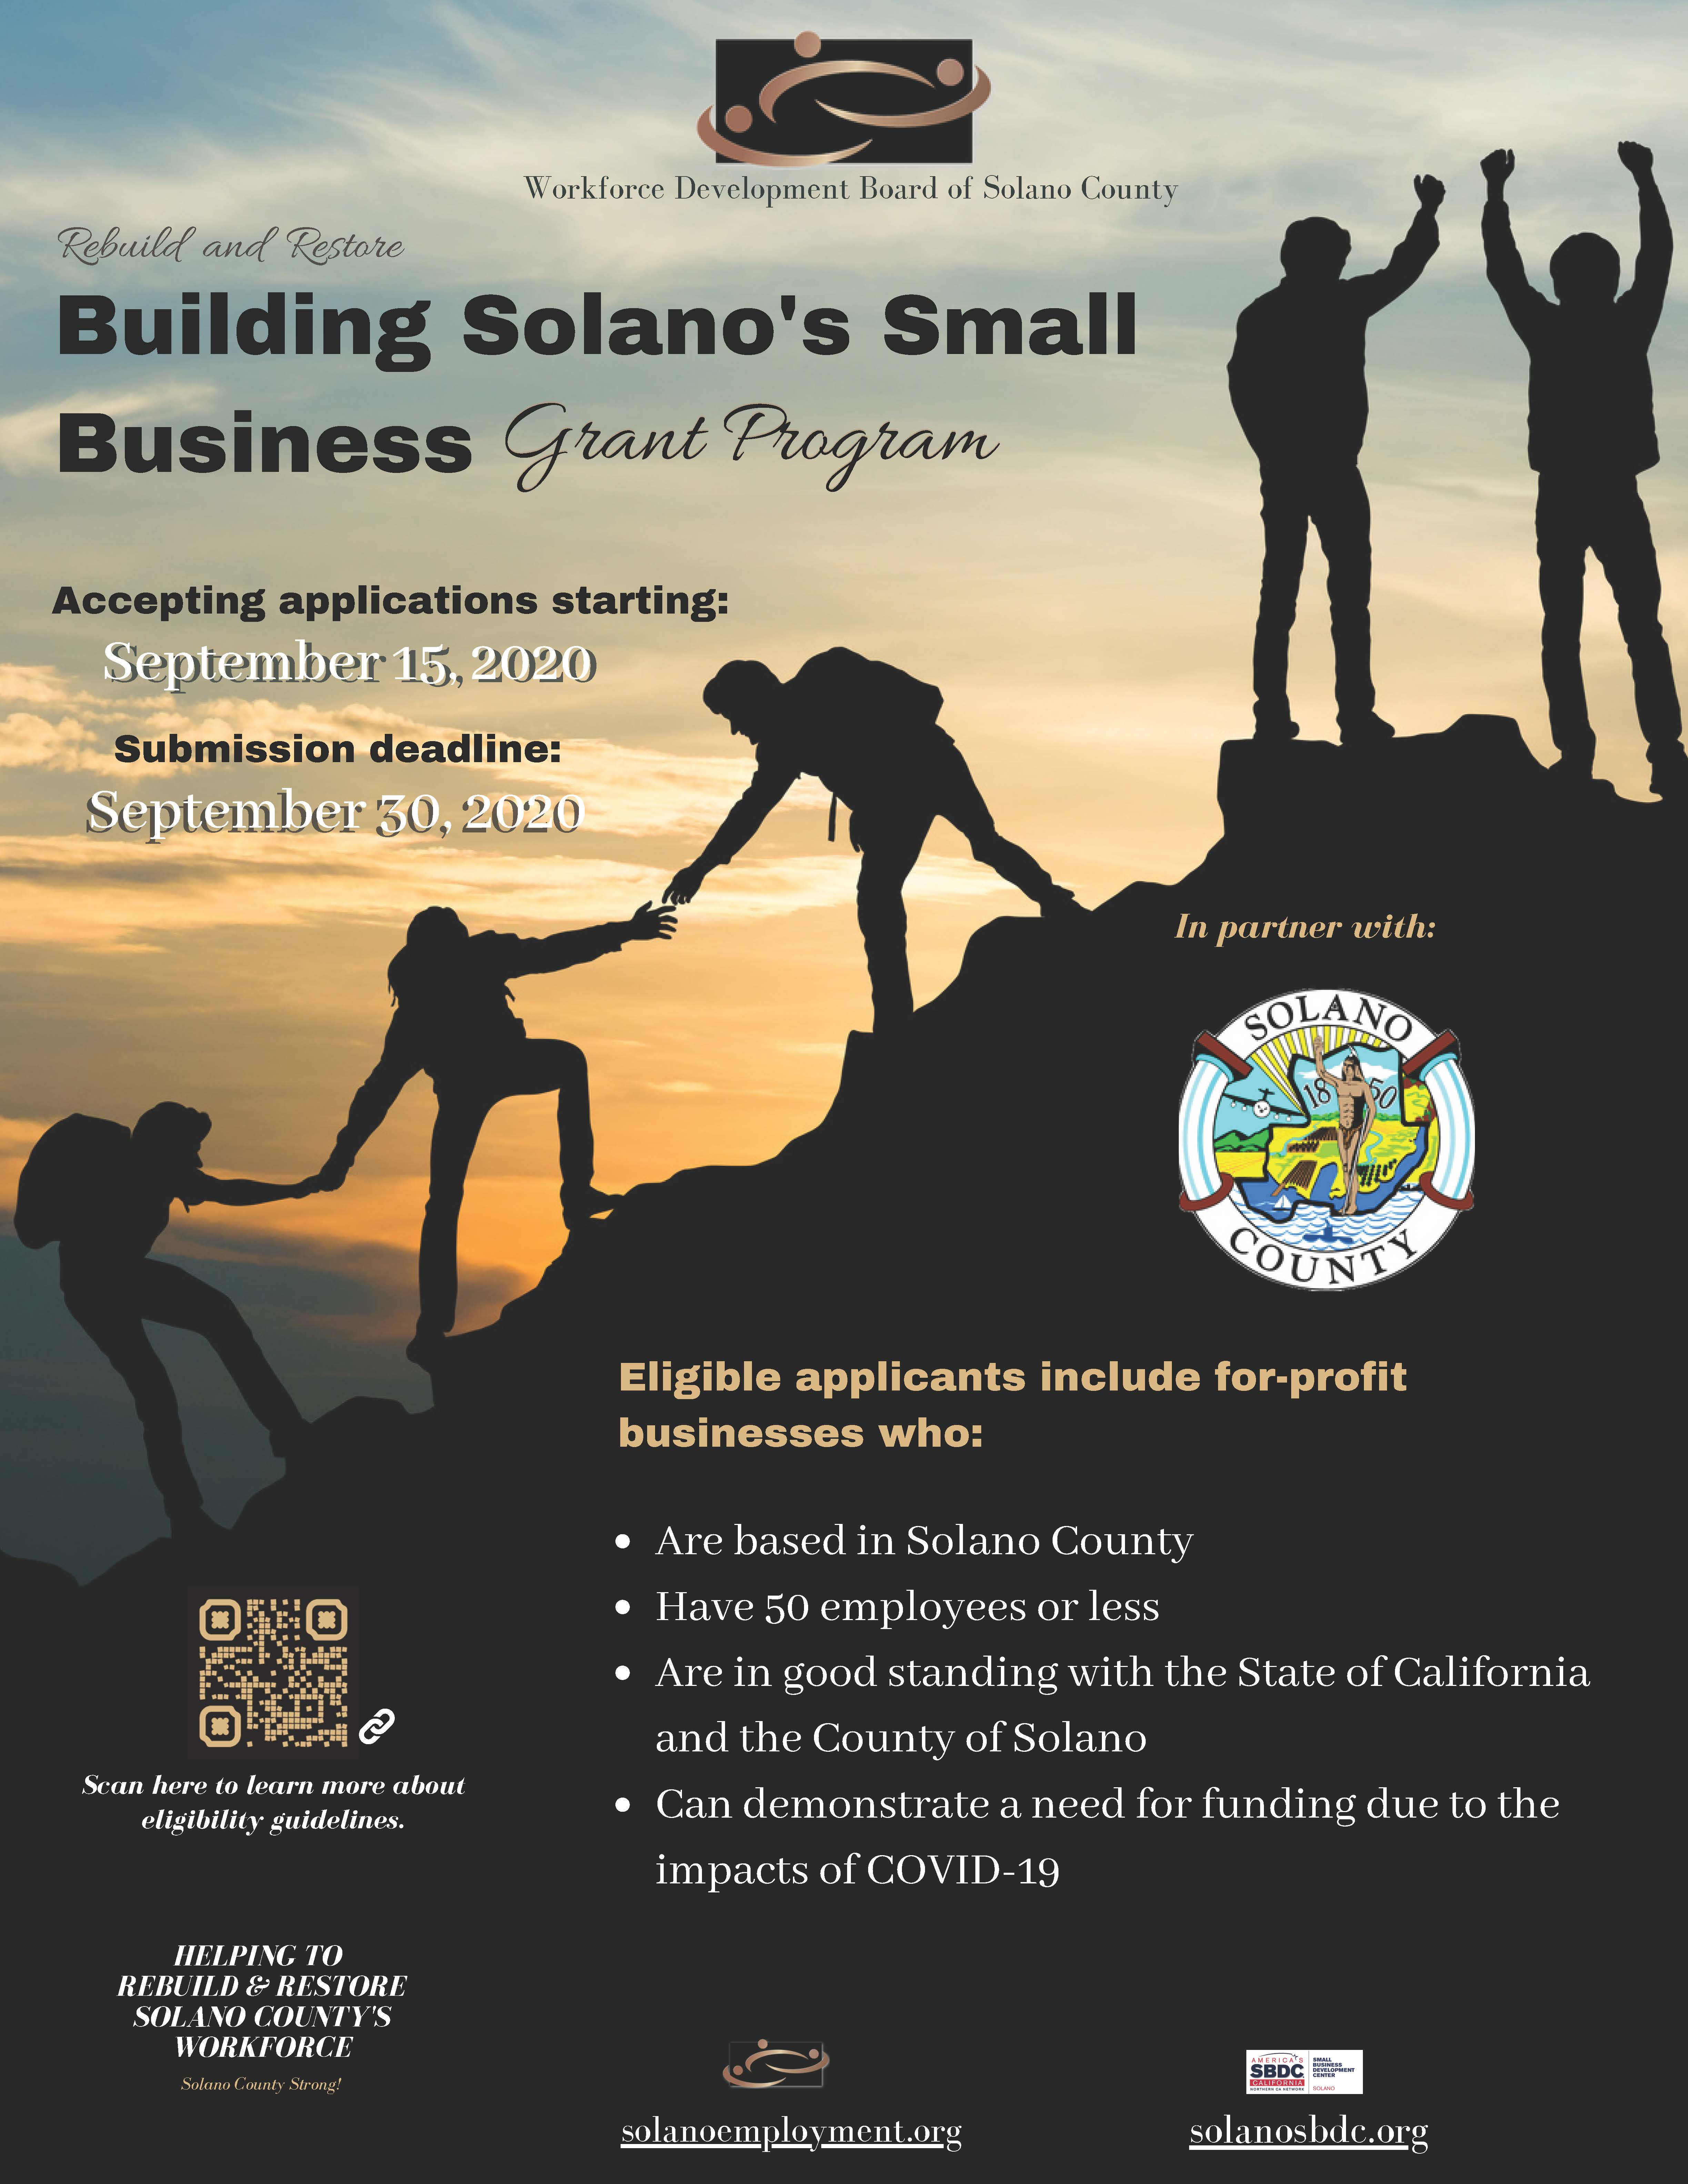 Building Solano's Small Businesses Grant Program blog featured image